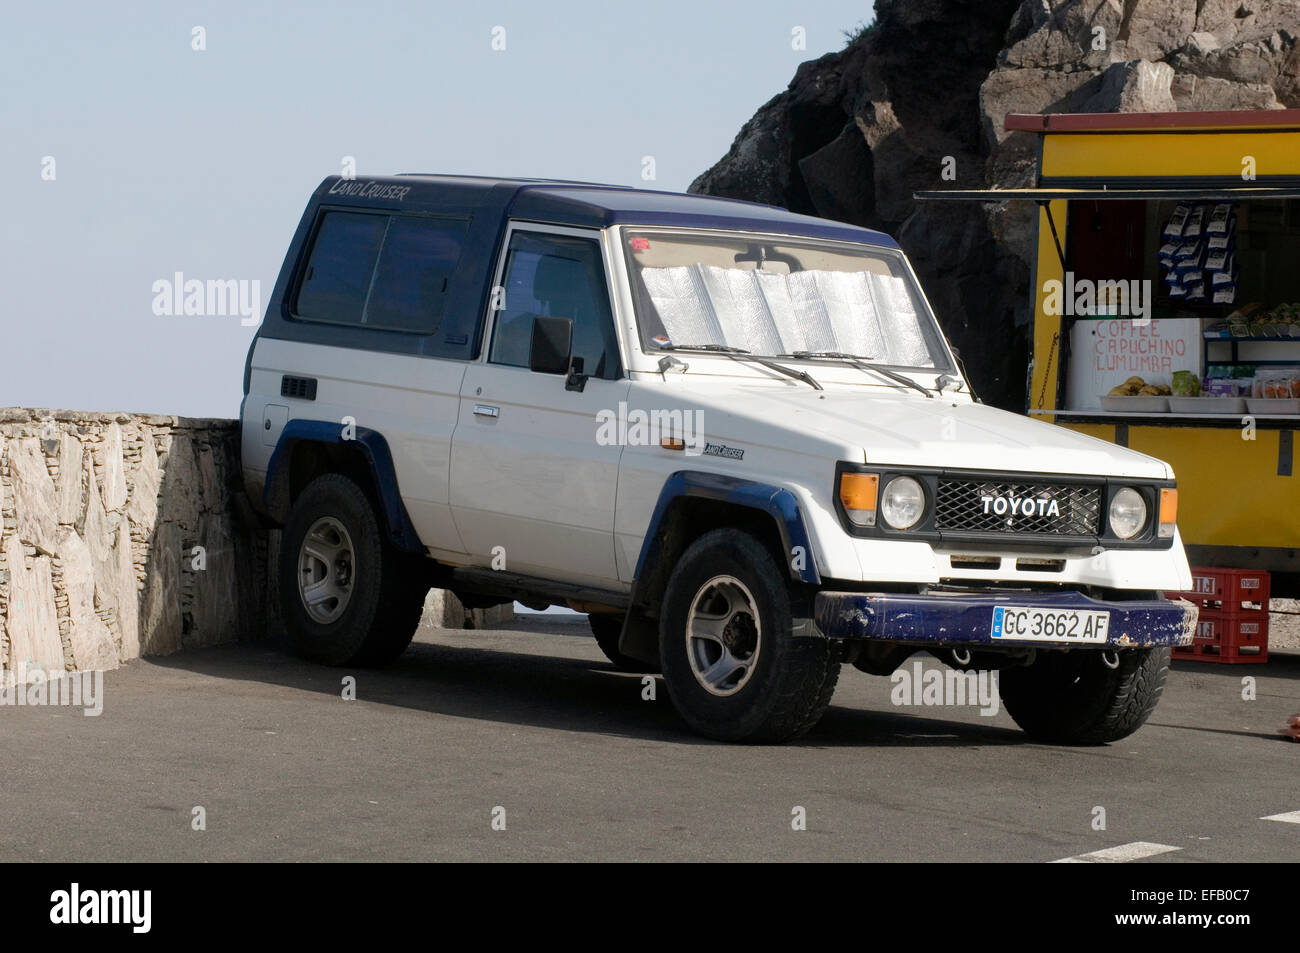 toyota land cruiser 4X4 four 4 by offroad suv - Stock Image